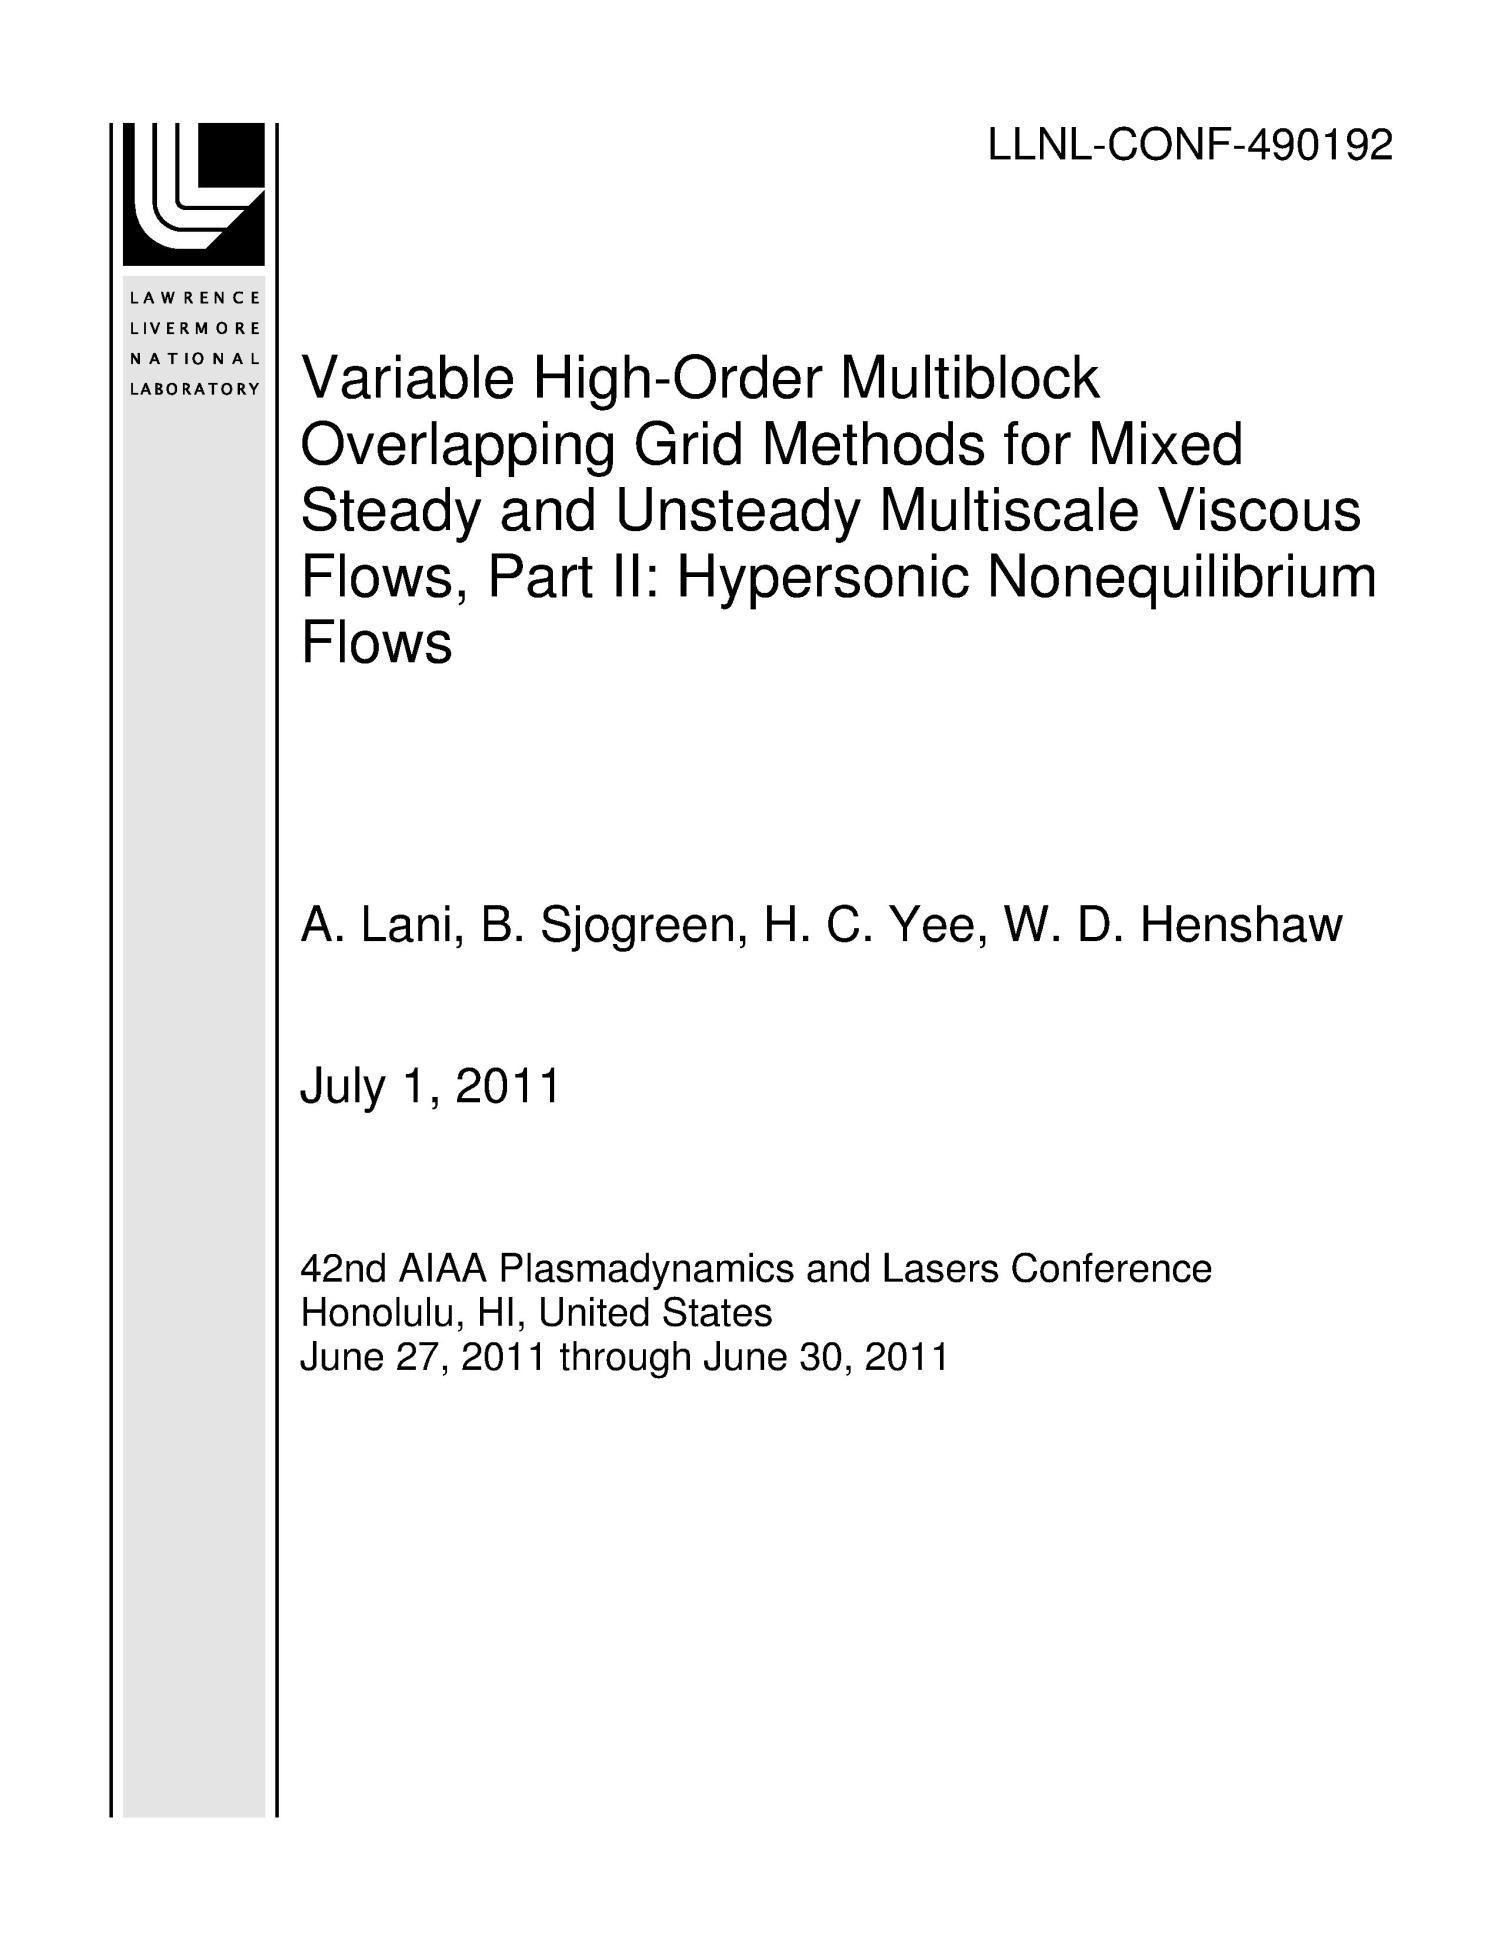 Variable High-Order Multiblock Overlapping Grid Methods for Mixed Steady and Unsteady Multiscale Viscous Flows, Part II: Hypersonic Nonequilibrium Flows                                                                                                      [Sequence #]: 1 of 18